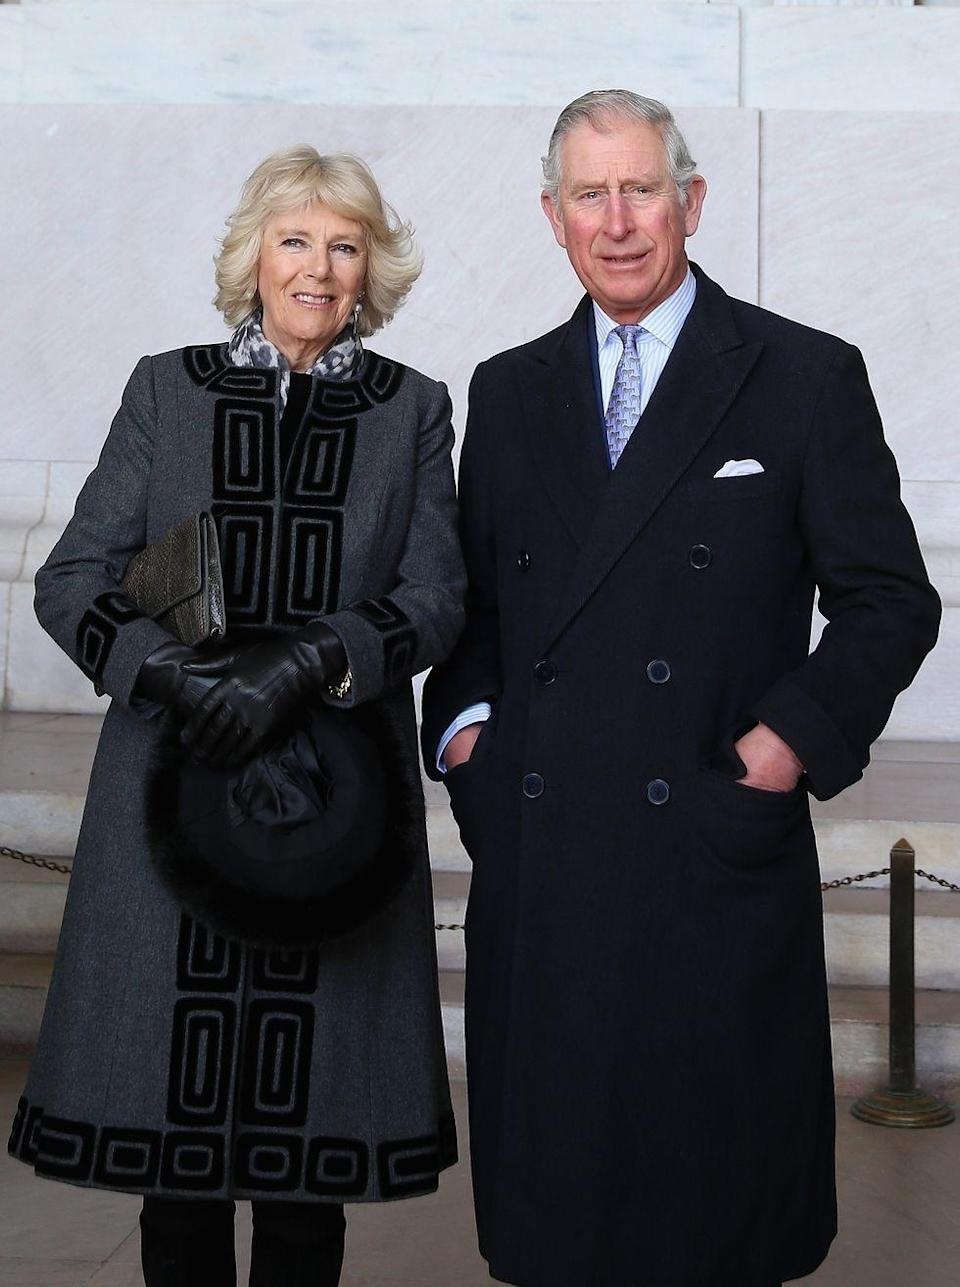 <p>On a visit to the U.S., Camilla posed with Prince Charles in front of the Lincoln Memorial in Washington, DC wearing this geometric patterned charcoal and black coat. </p>